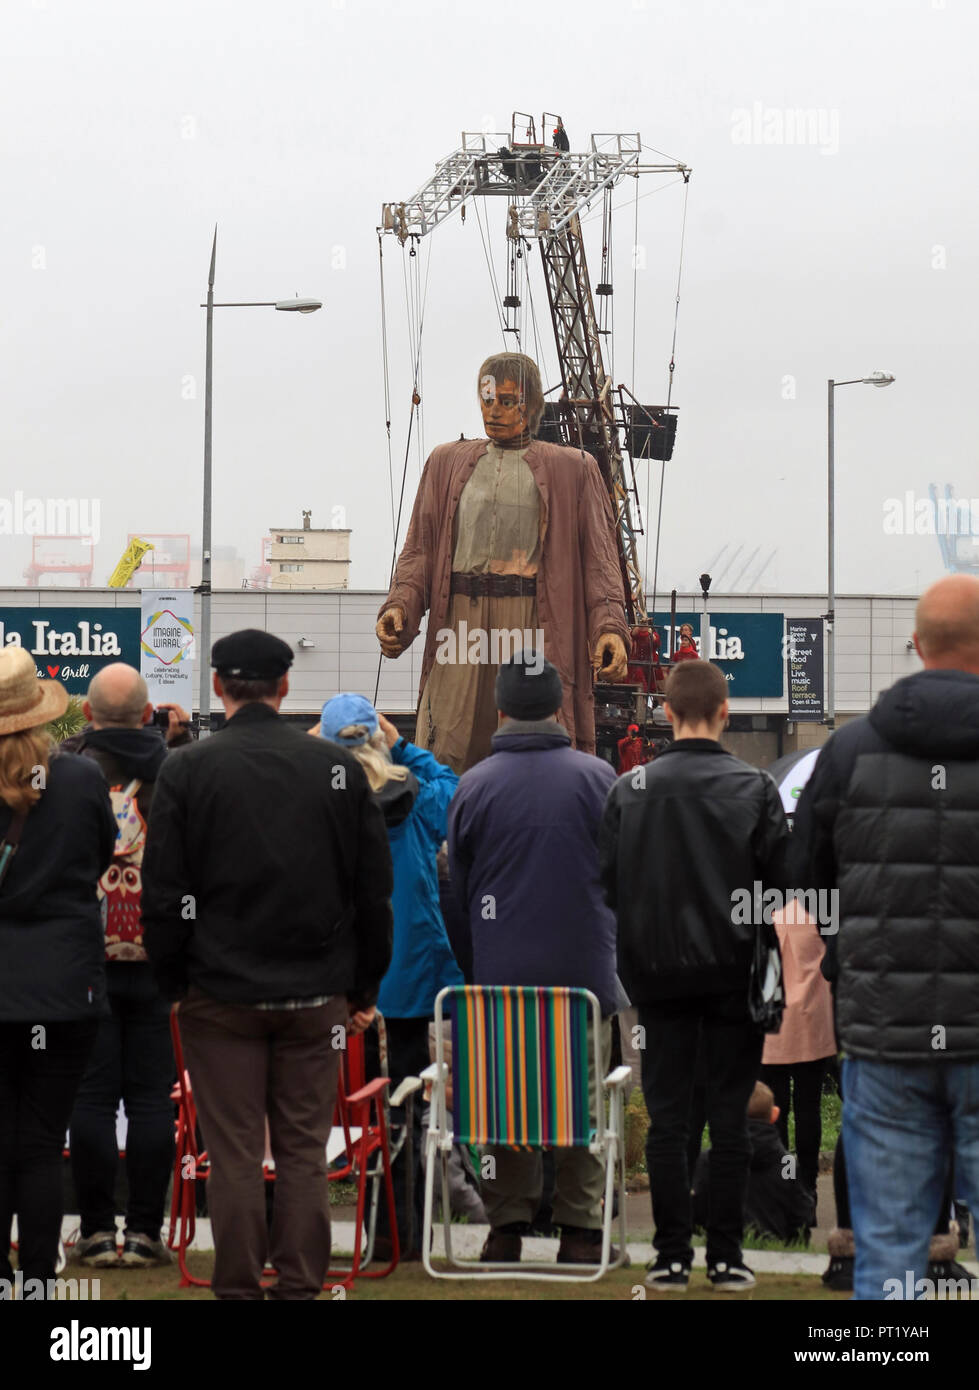 Merseyside, UK. 5th October 2018. New Brighton, Wirral, Merseyside. 5th October 2018.  On a gloomy autumn morning The Giant makes his way along the Marine Drive at New Brighton on The Wirral brings the crowds to their feet. Credit: Colin Wareing/Alamy Live News Stock Photo